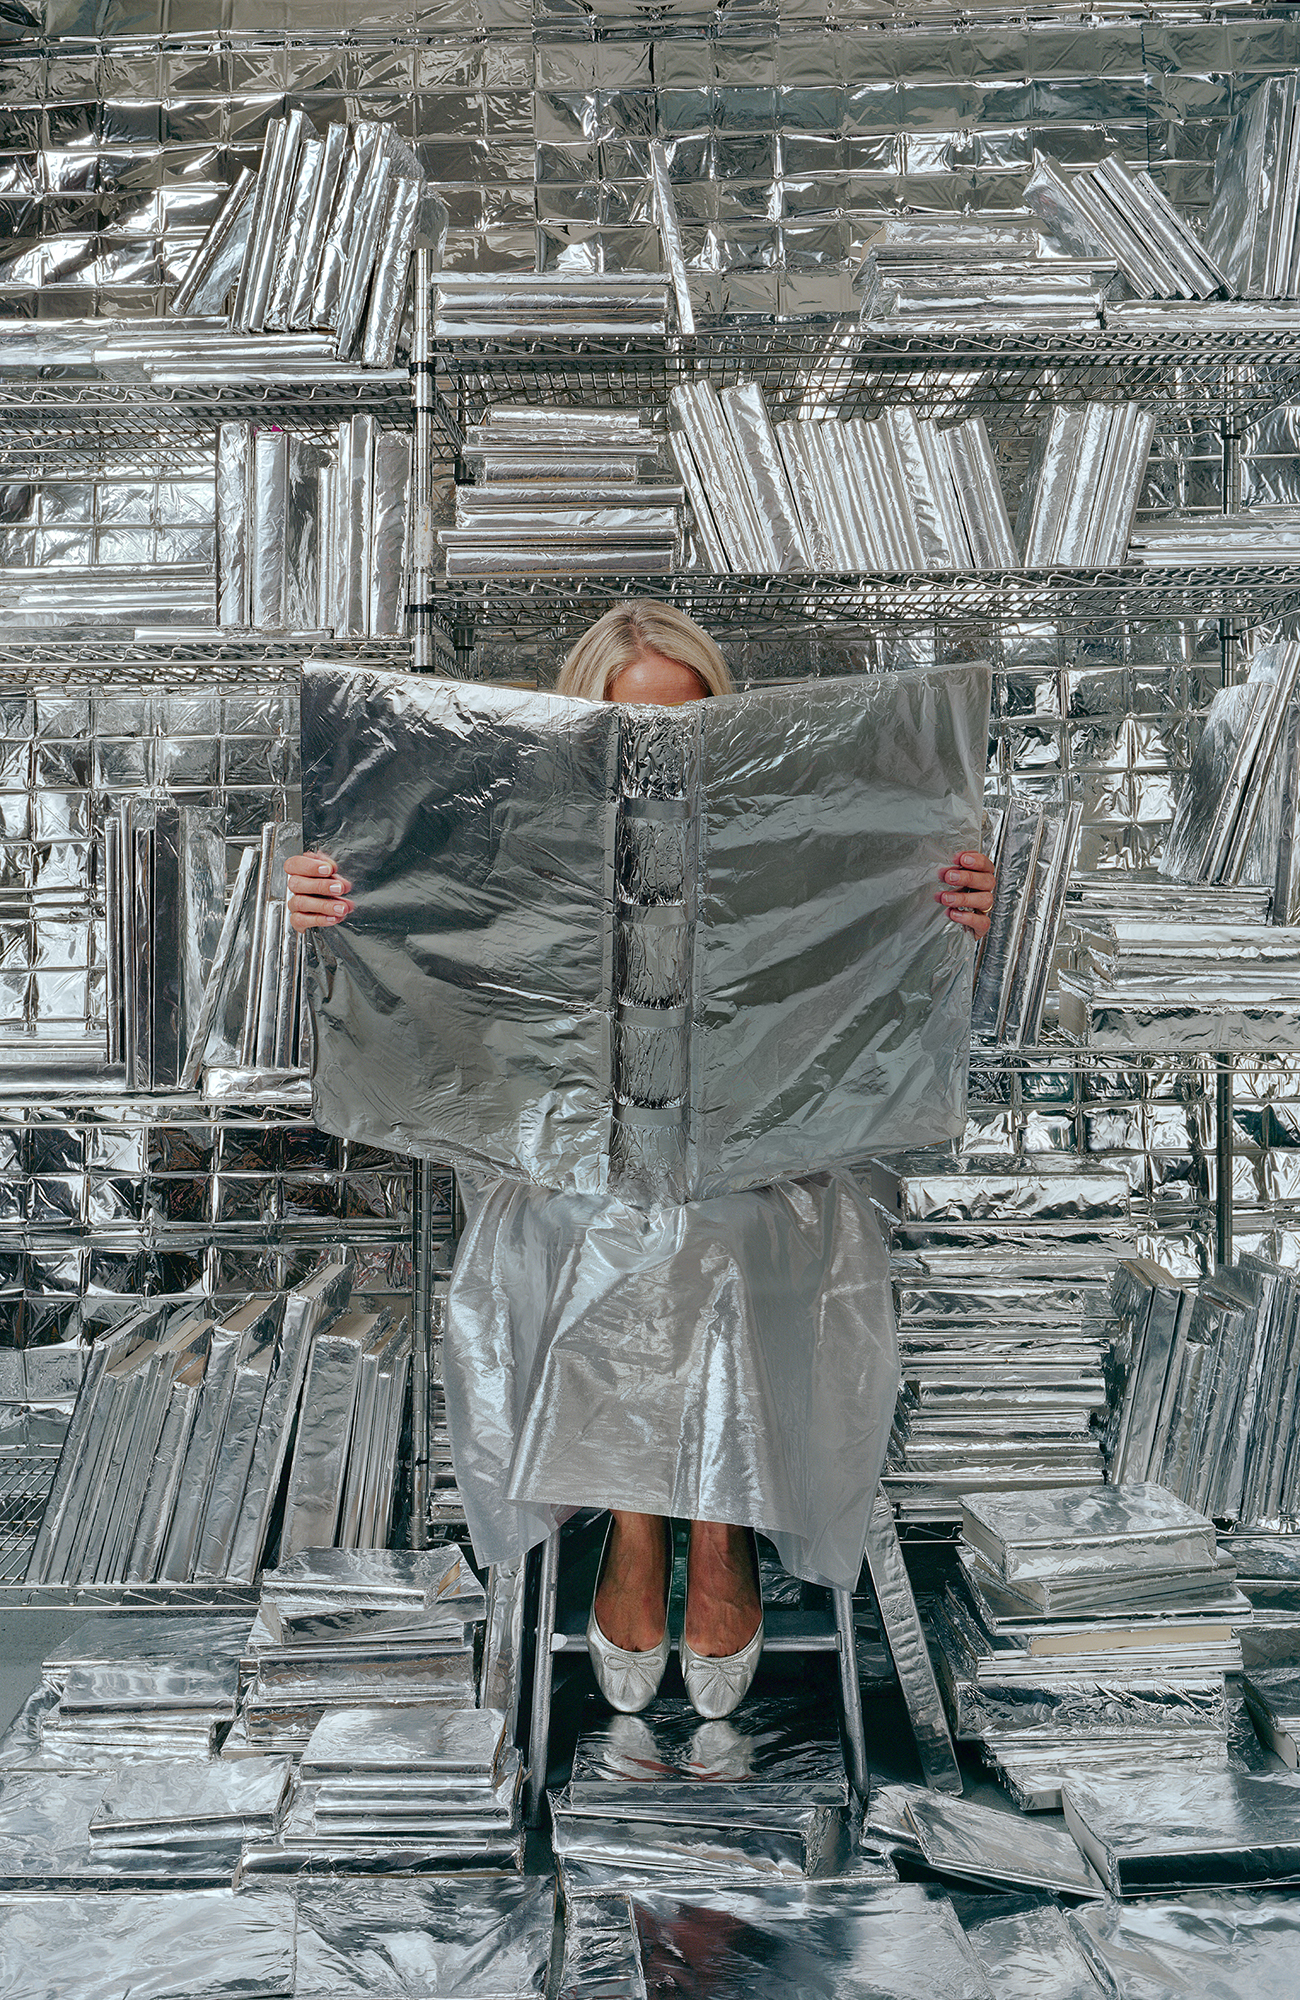 Lost in my Life (wrapped books), 2010